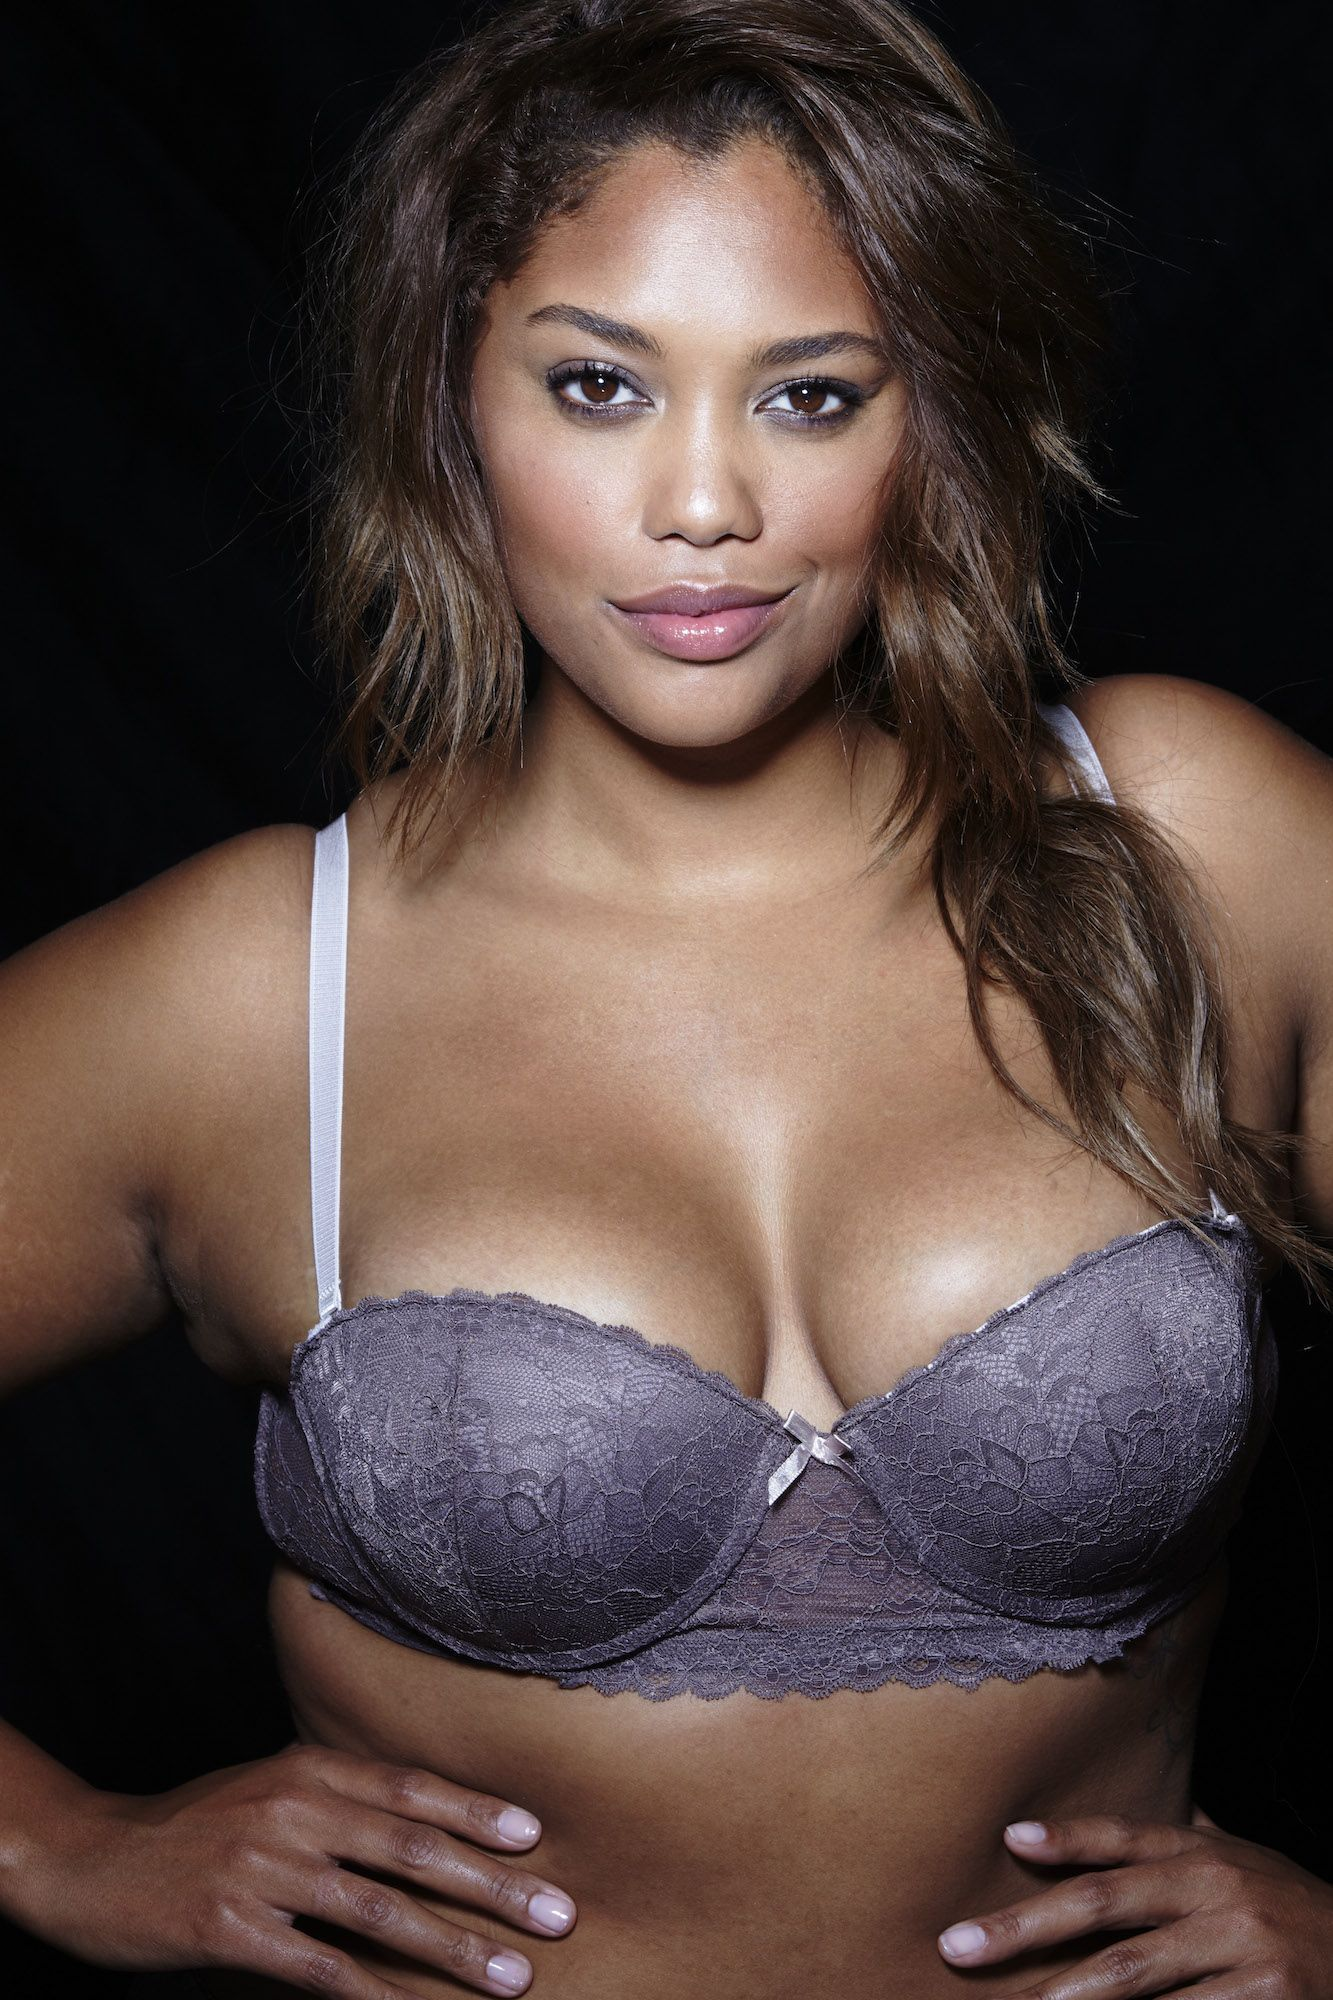 f4a4c2dc978 BRITTNEE BLAIR Plus Size Model